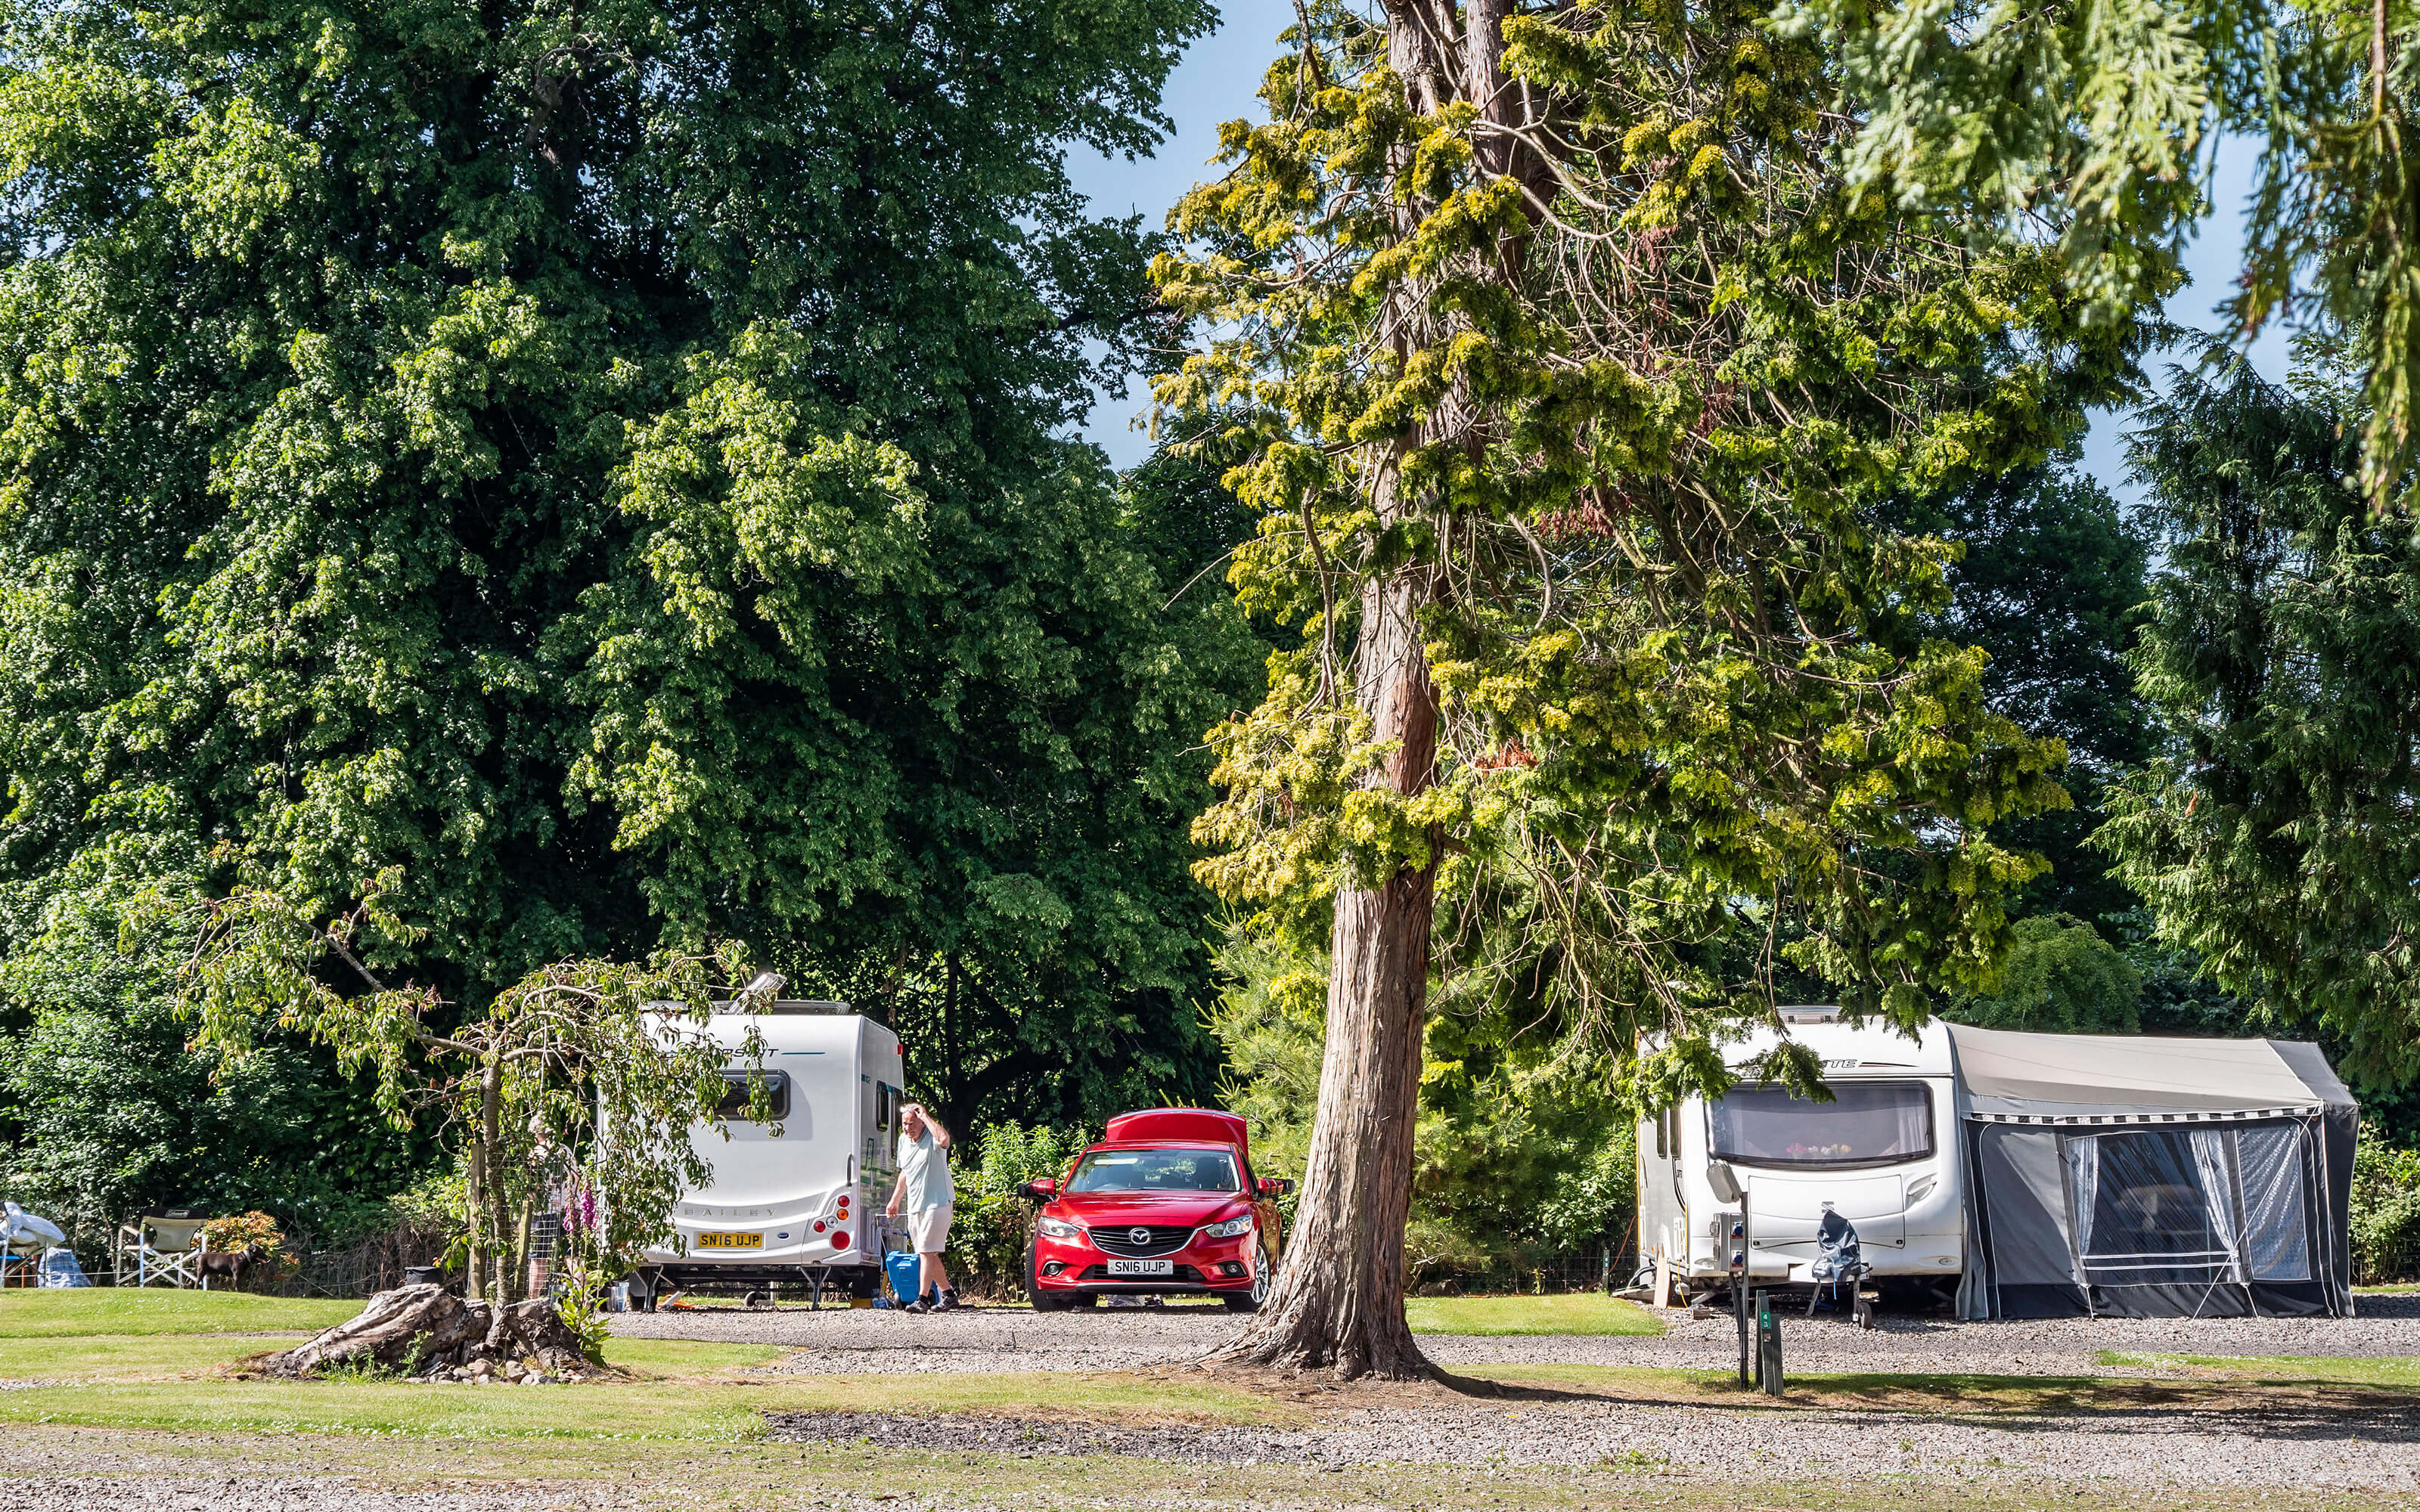 A group of caravans by some large the trees.